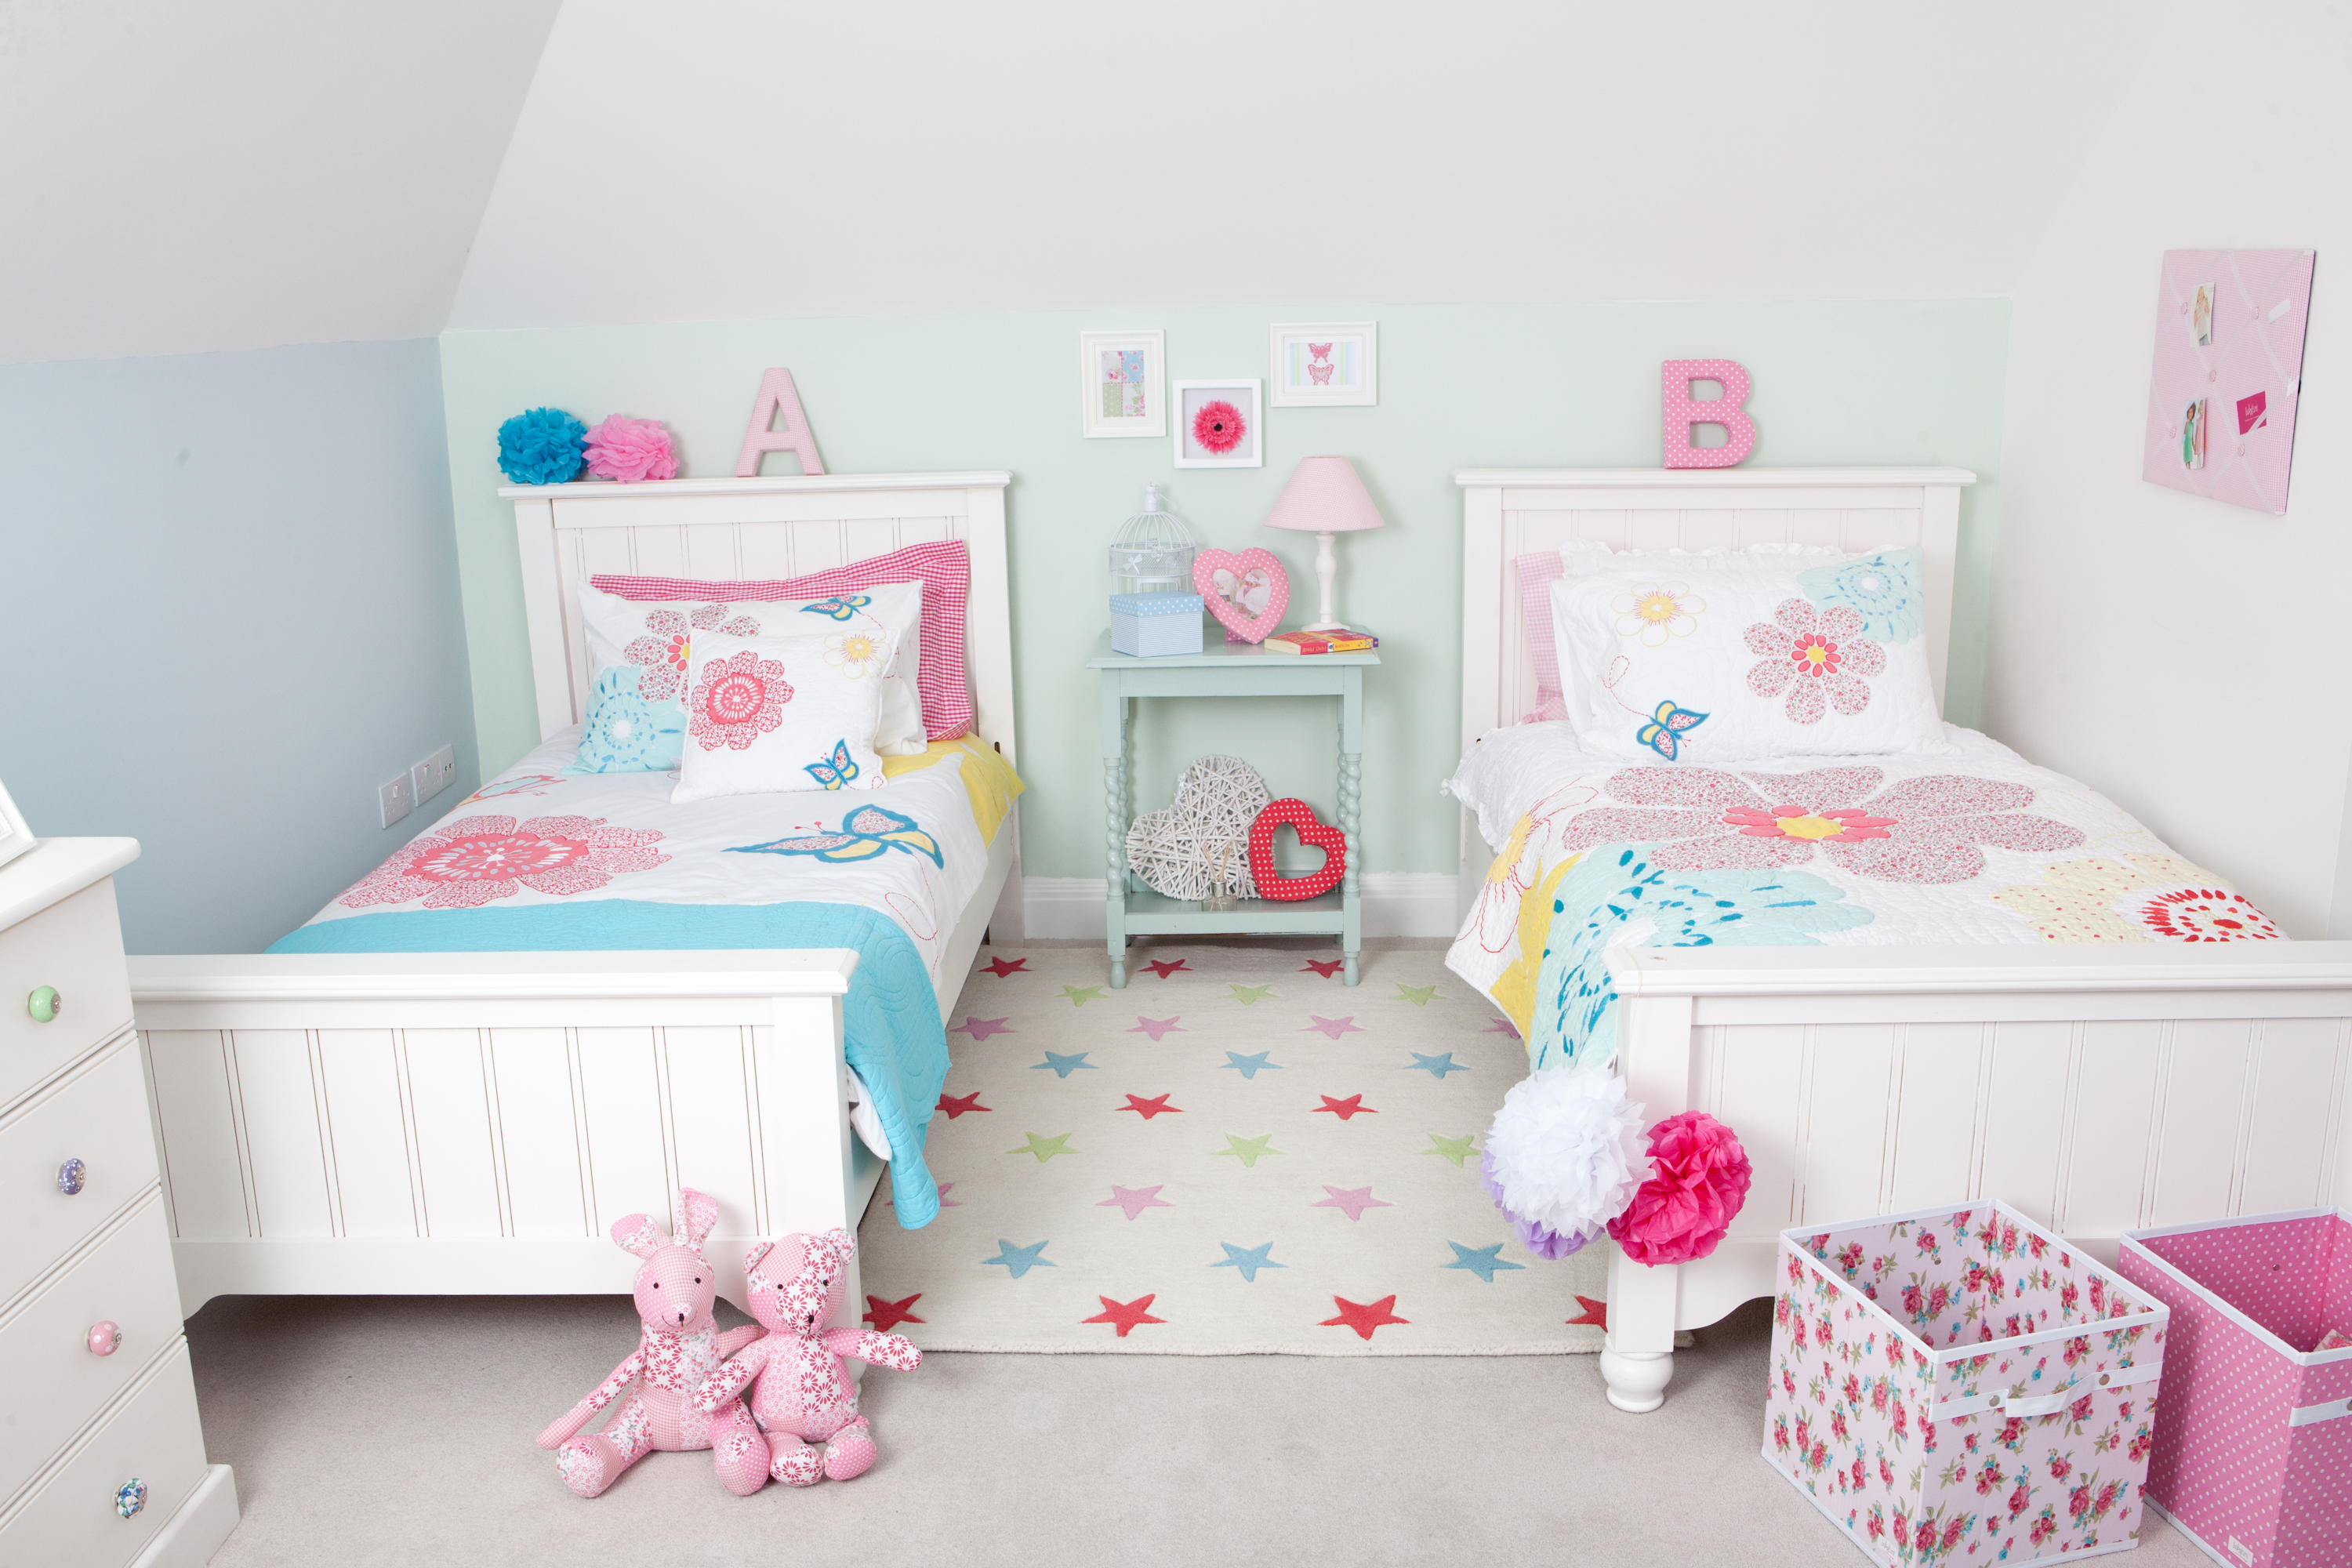 Kids room design for two girls - Two Sets Of Single Bed With Higher Headboard For Little Twin Girls A Light Blue Console